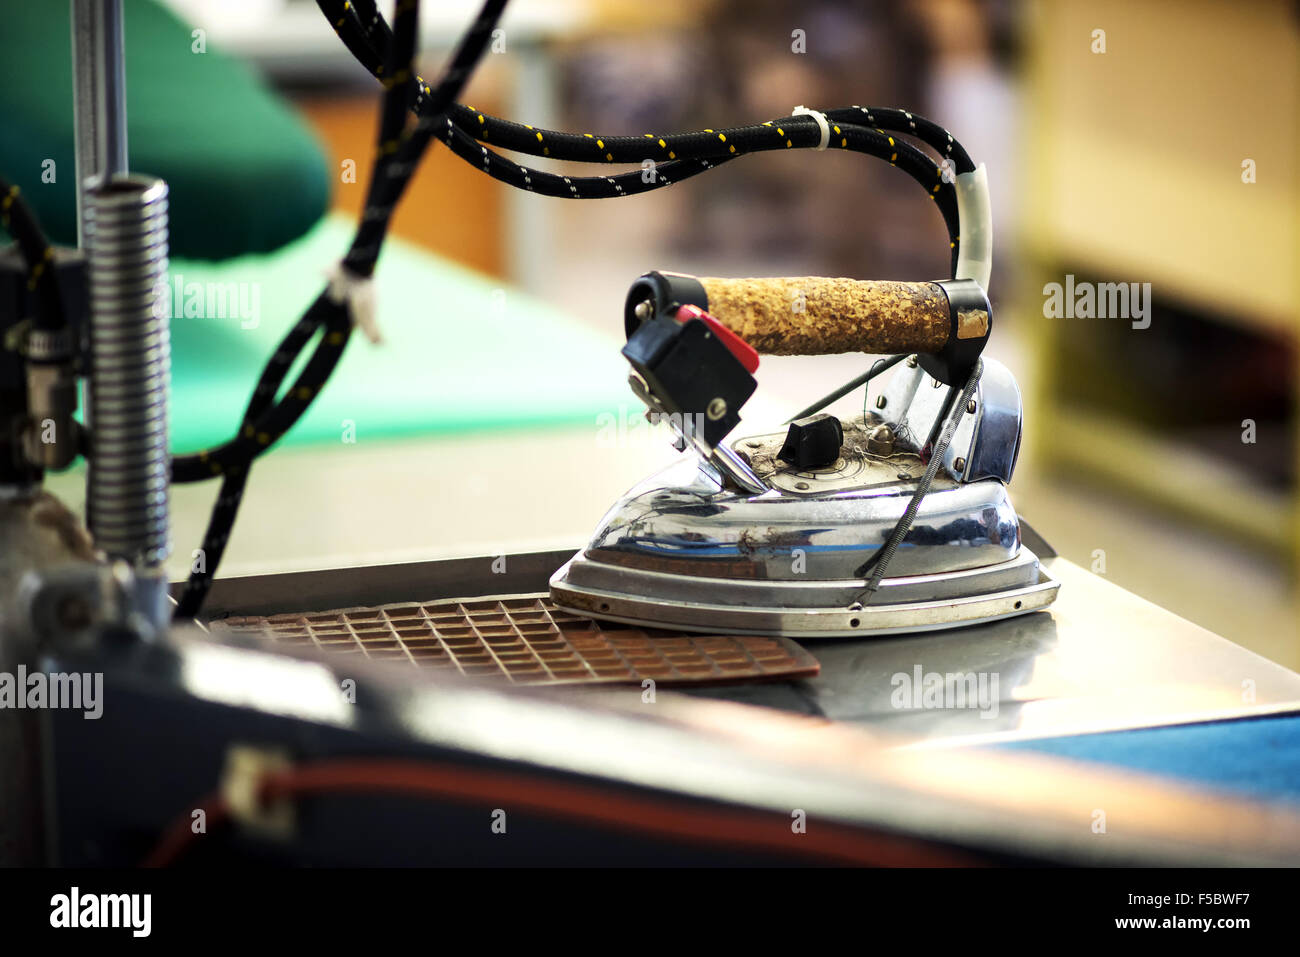 Professional iron in a tailor's factory, close up - Stock Image